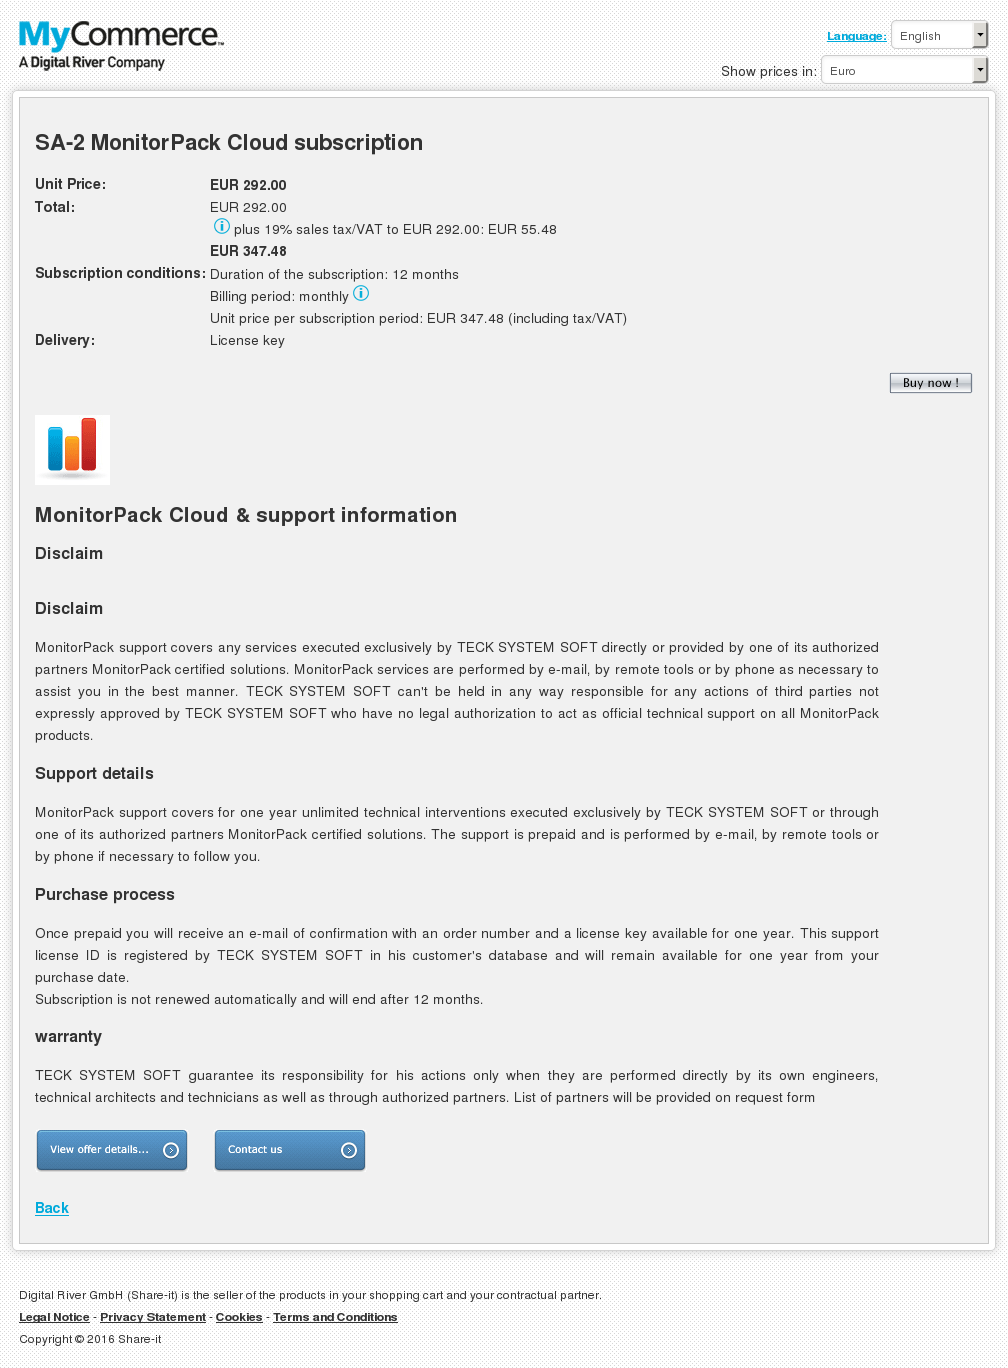 Monitorpack Cloud Subscription Key Information